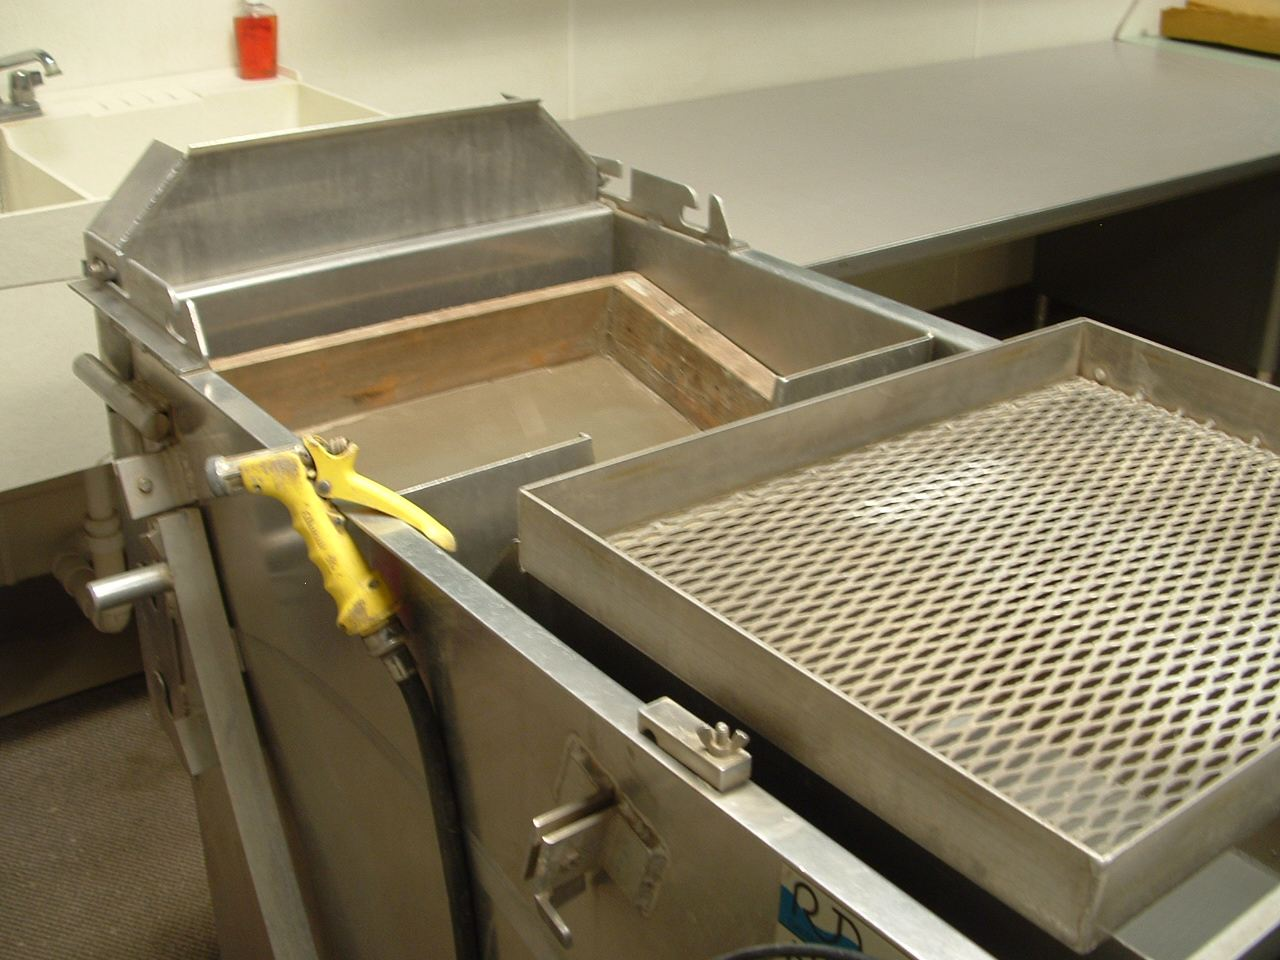 Soil samples are exposed to gentle streams of water in this water screening device